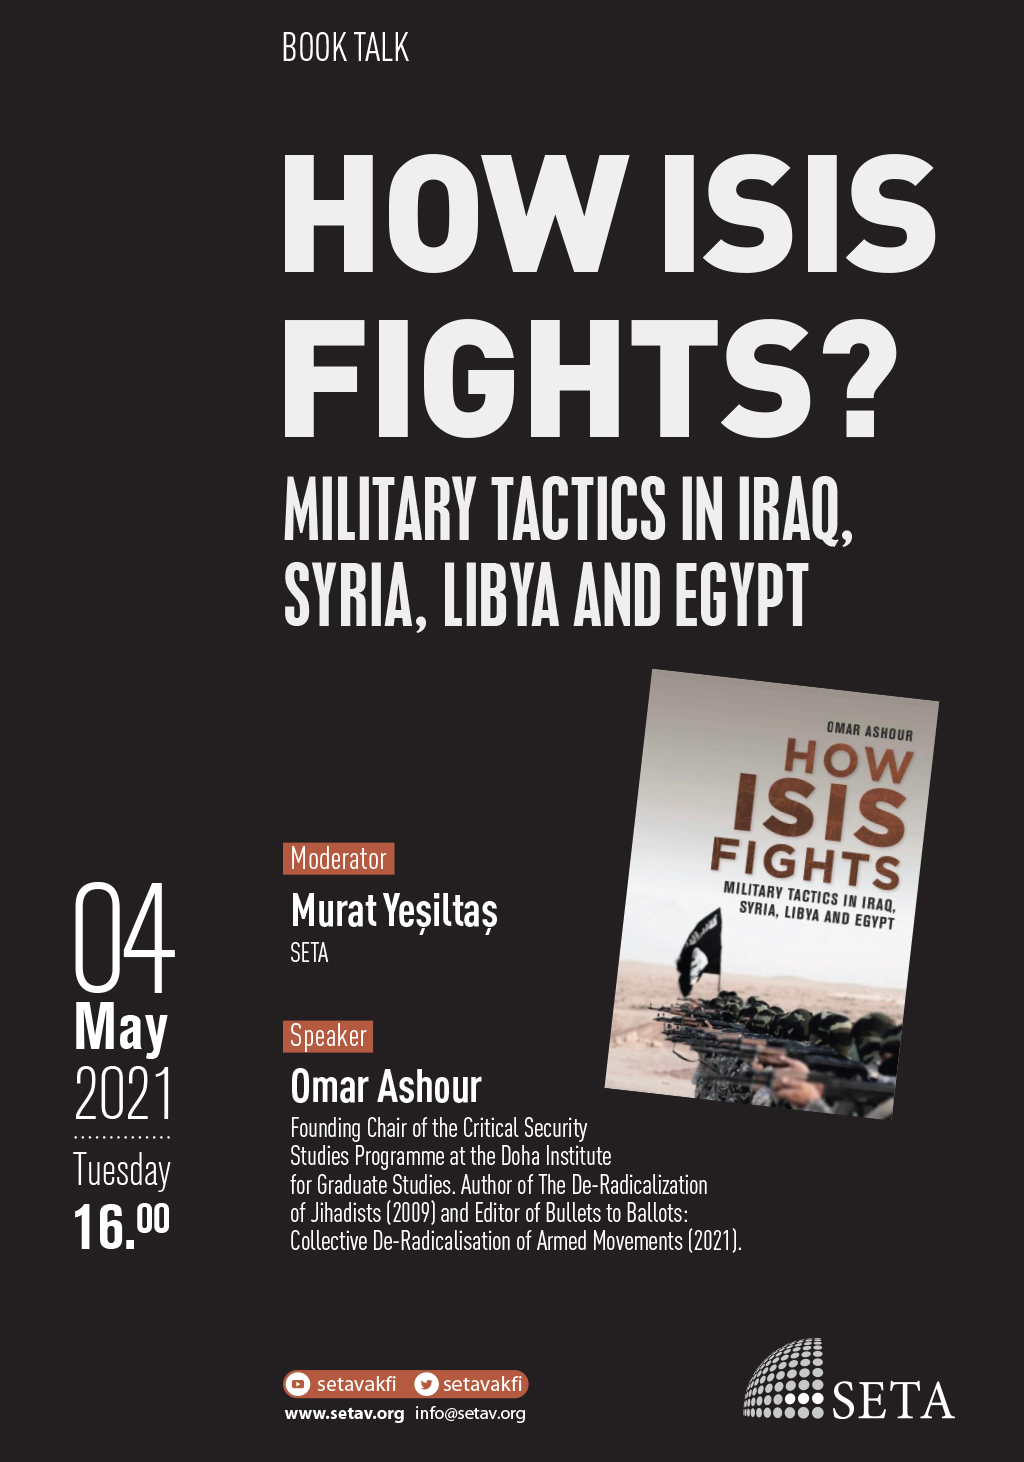 Book Talk: How ISIS Fights | Military Tactics in Iraq, Syria, Libya and Egypt